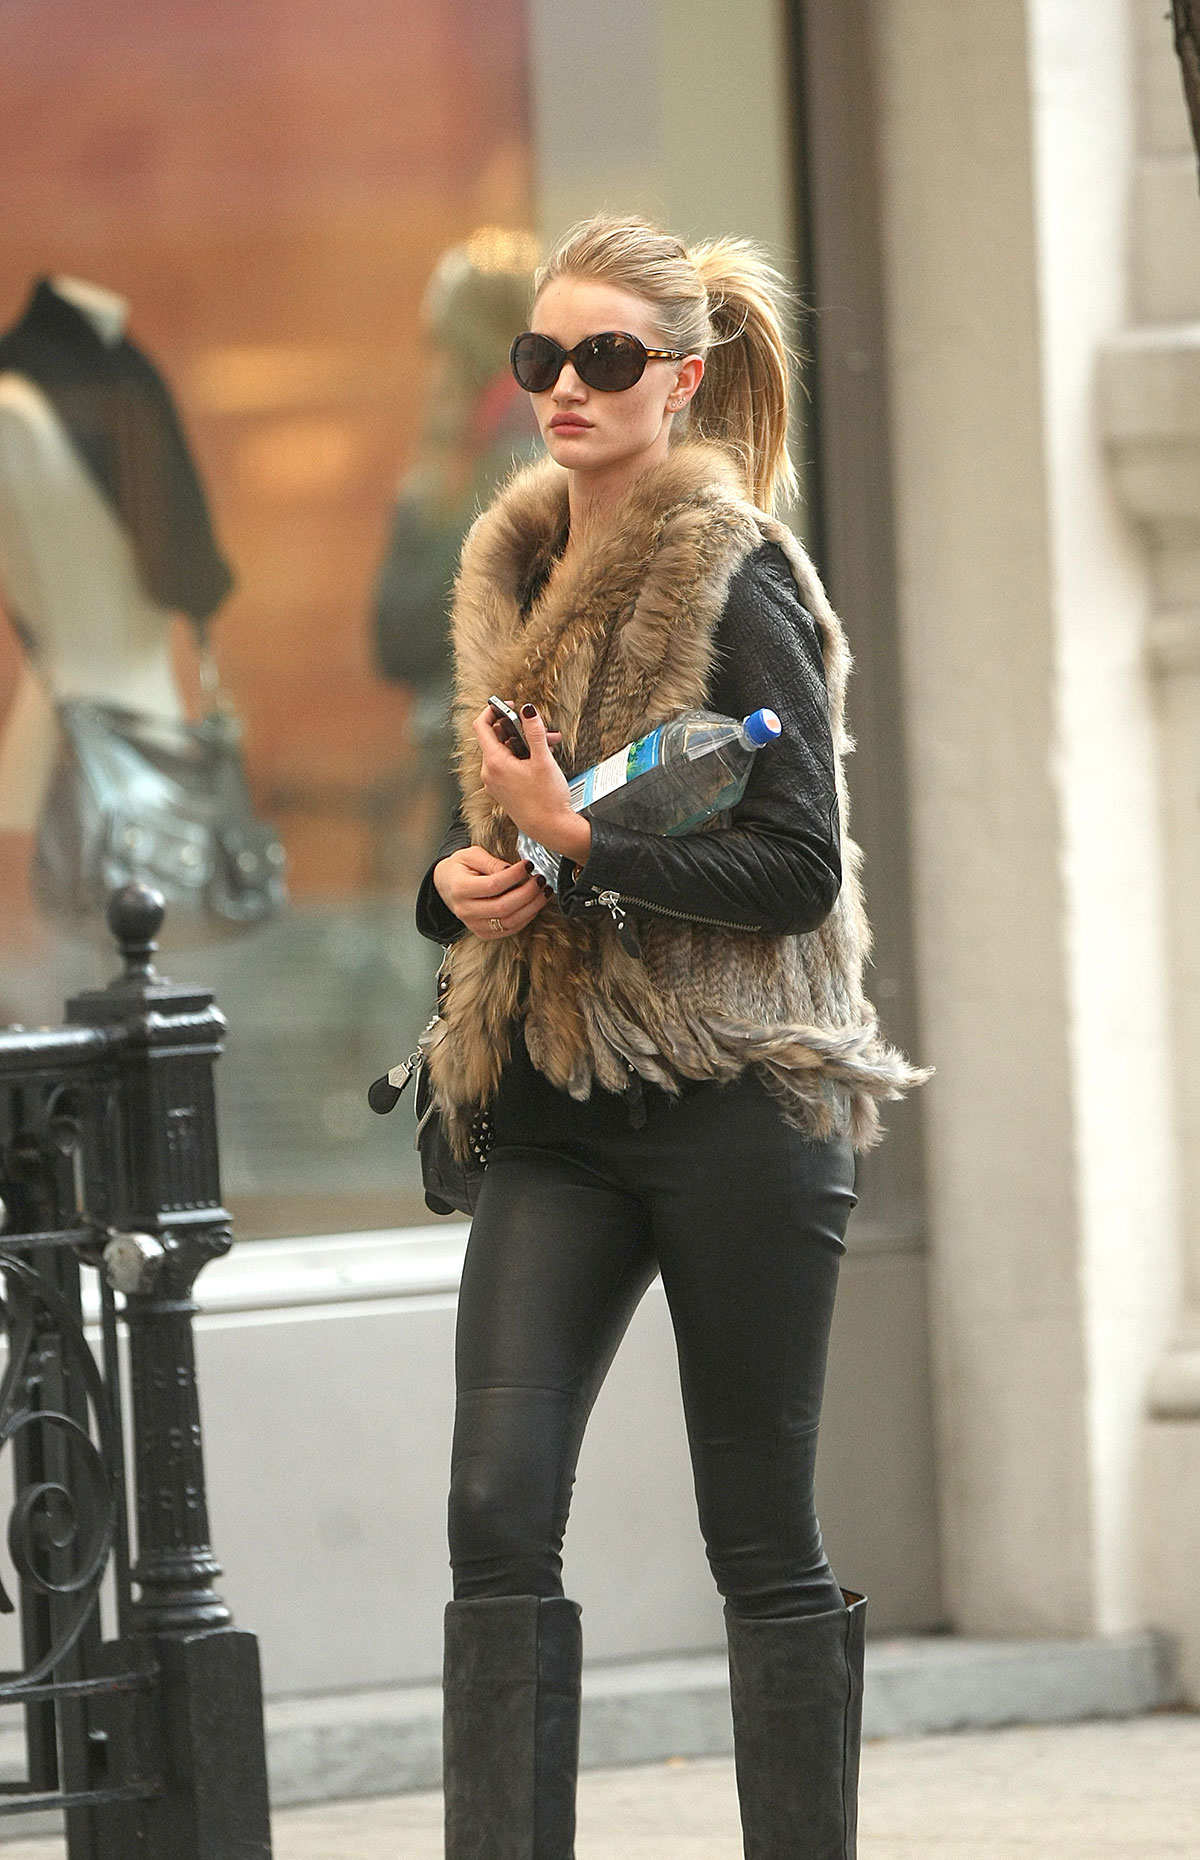 Rosie Huntington-Whitely steps out in New York